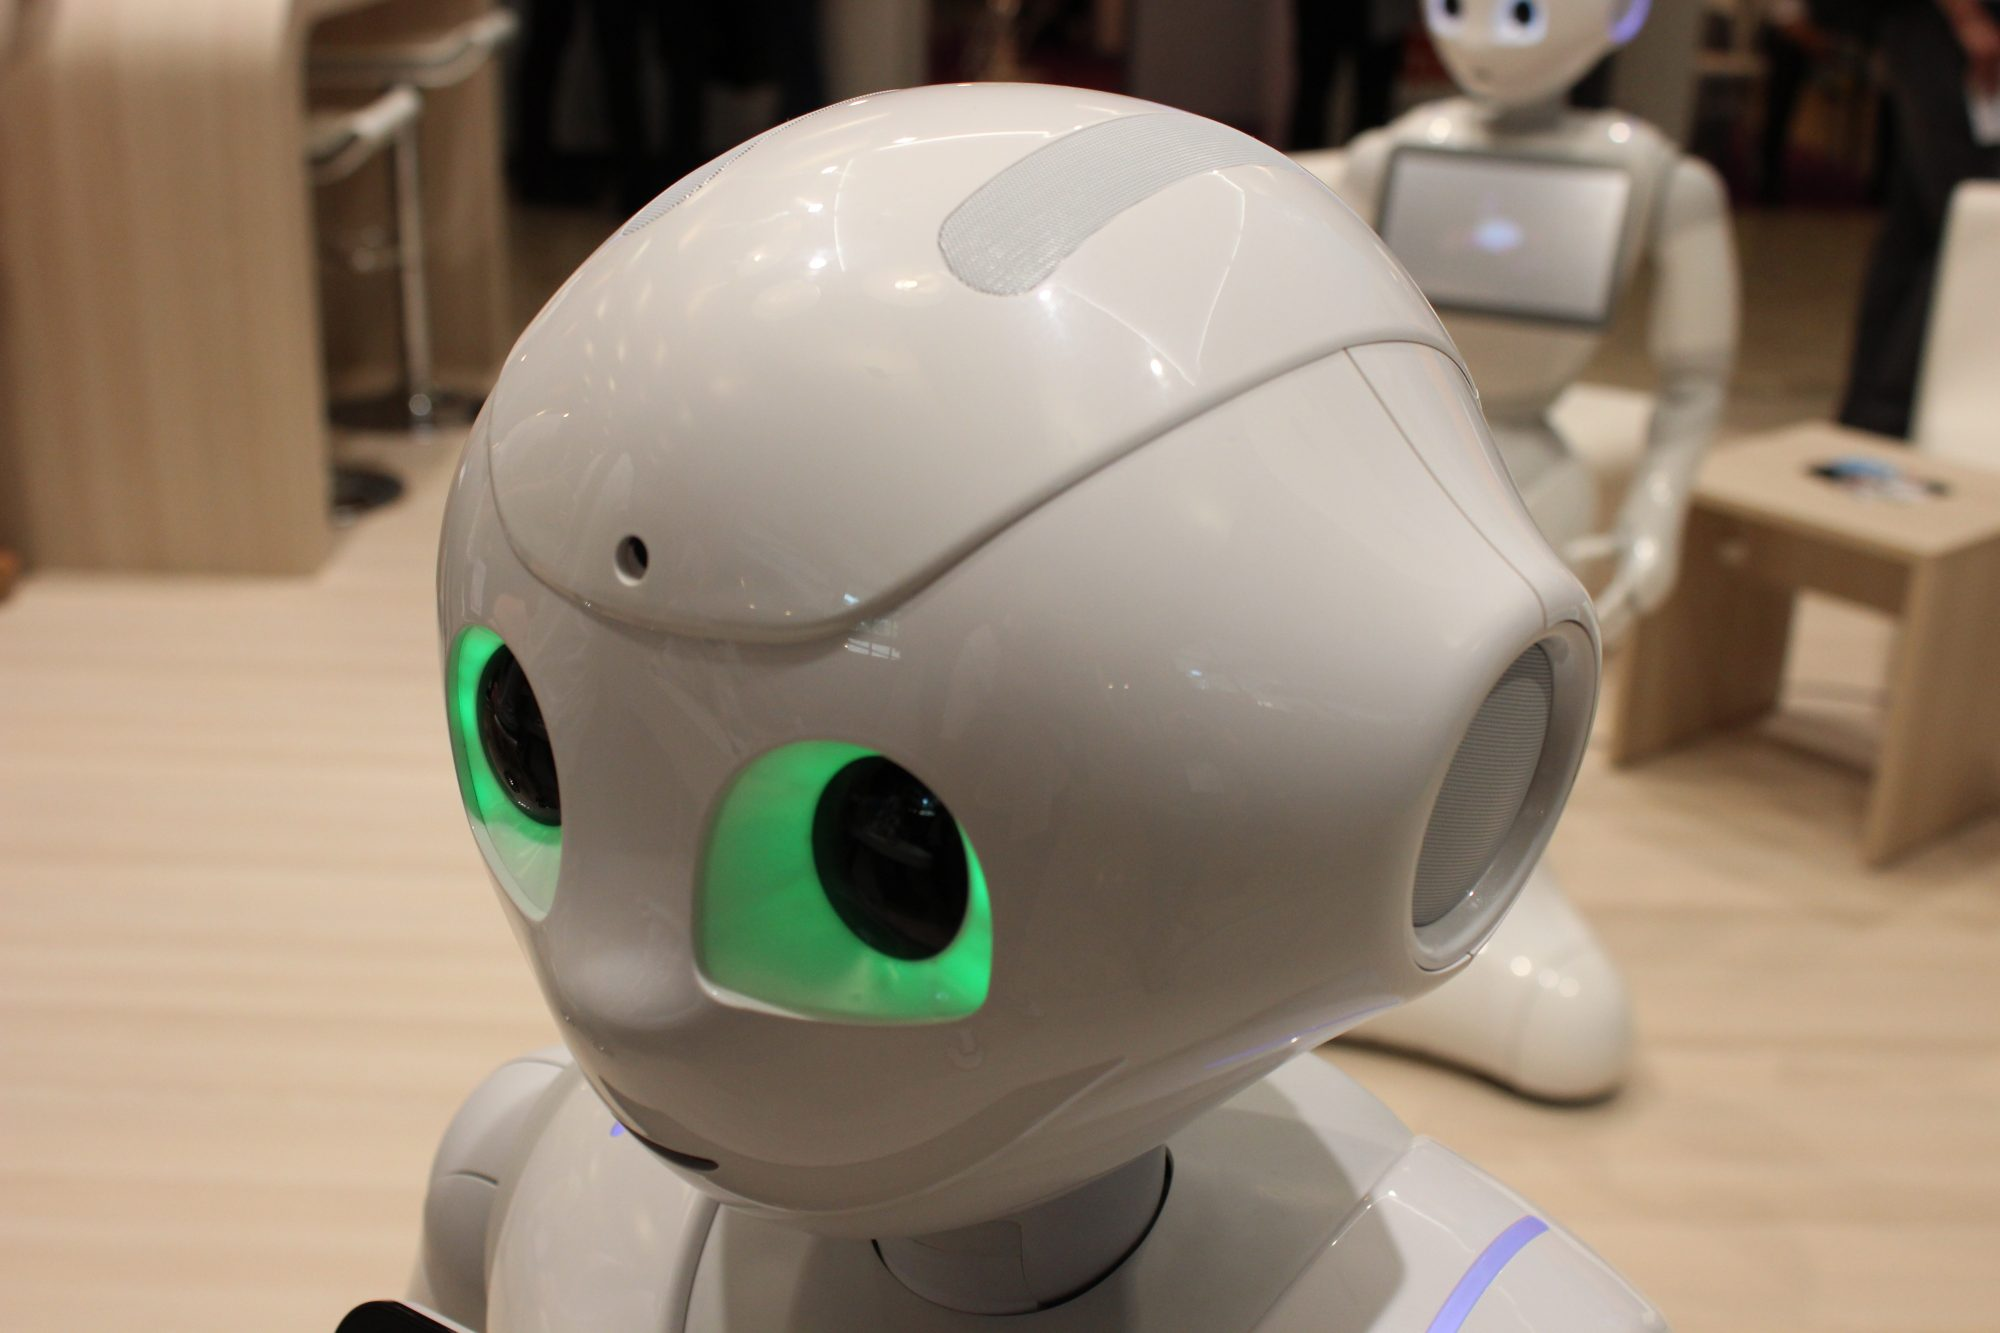 The Pepper Robot created by SoftBank Robotics Corps.